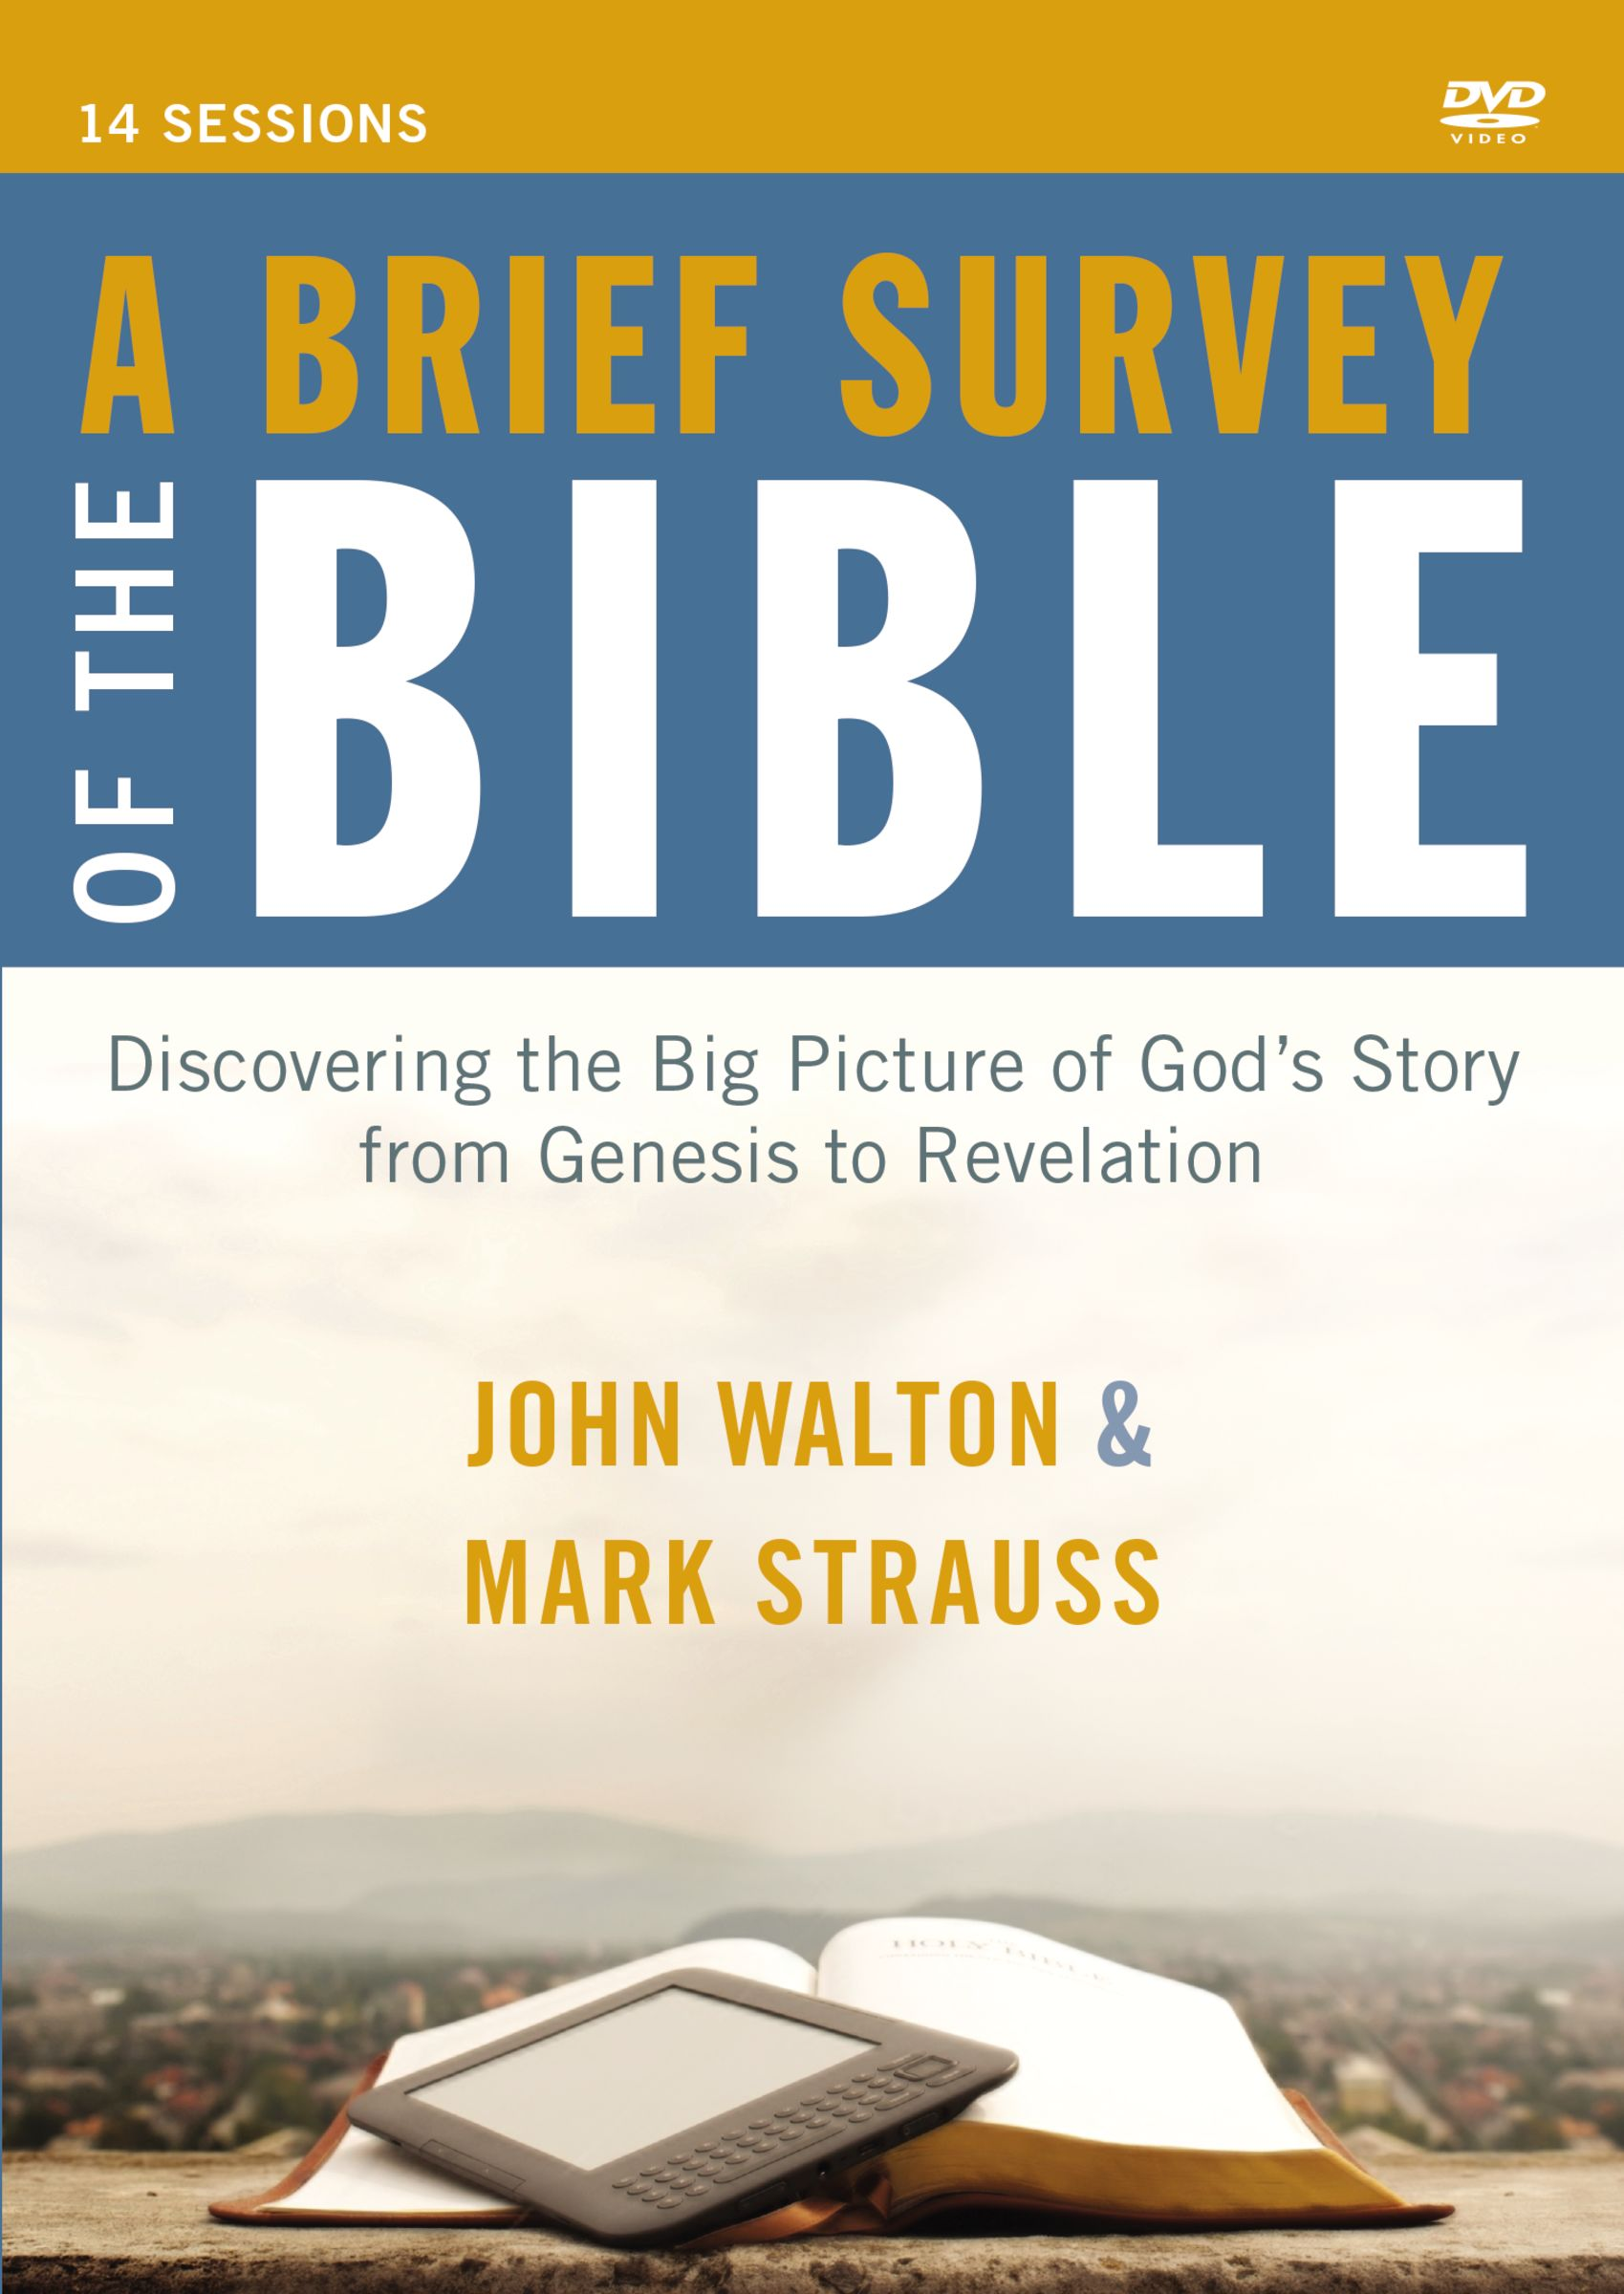 A Brief Survey of the Bible Video Study